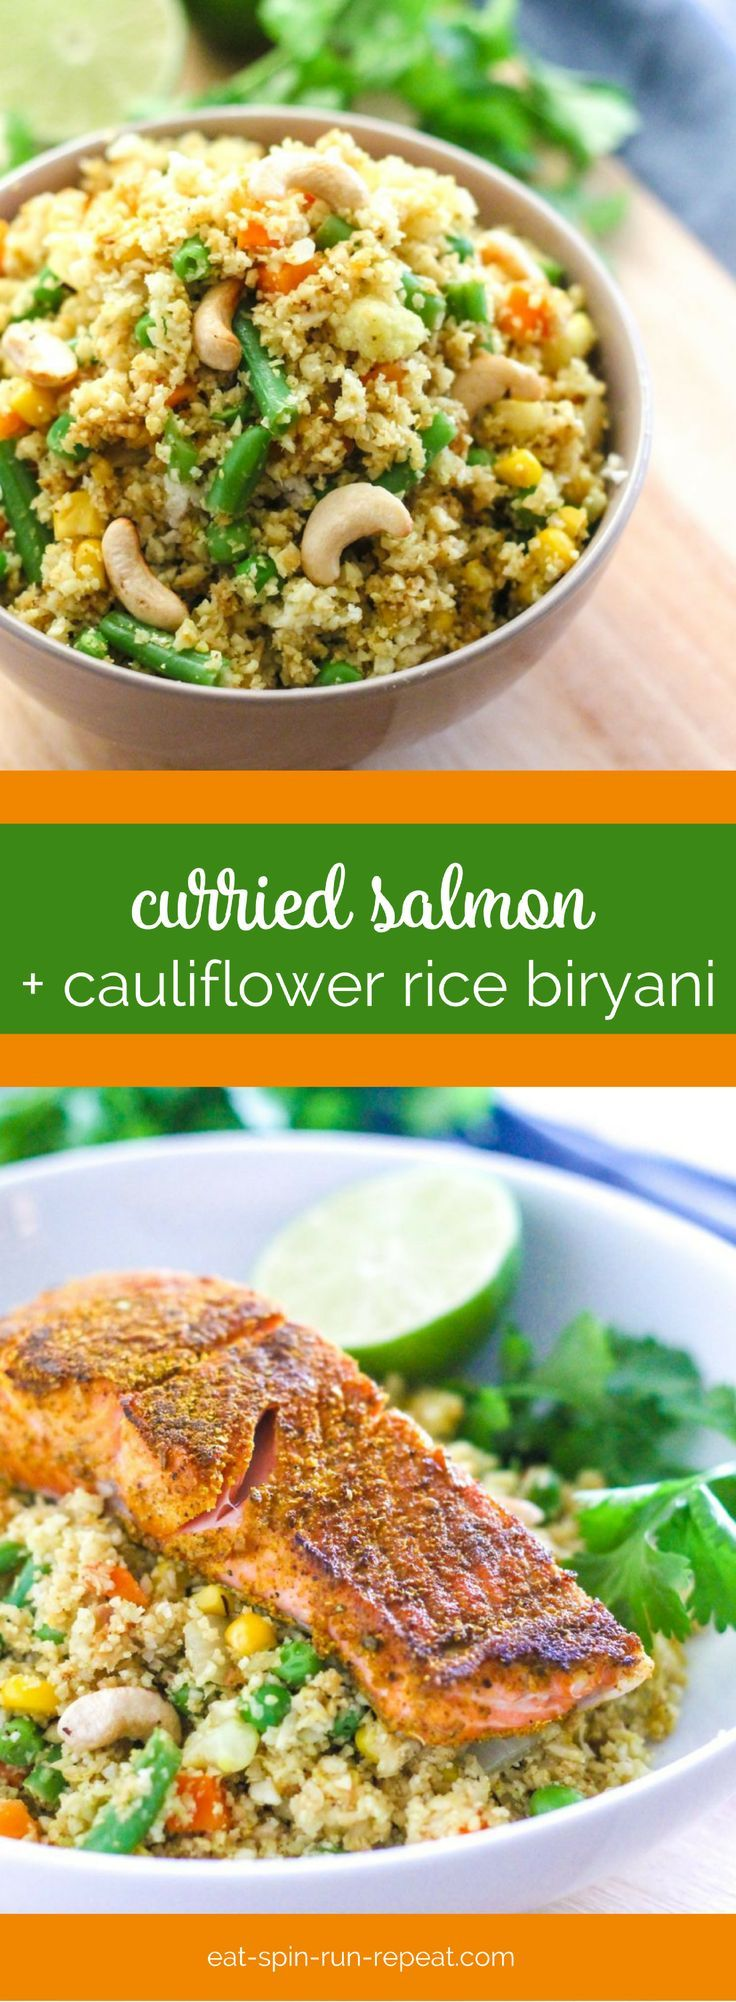 Curried Salmon with Cauliflower Rice Biryani + a free 1-day anti-inflammatory meal plan. Gluten-free, dairy-free, and full of health-building ingredients to help make you feel awesome!